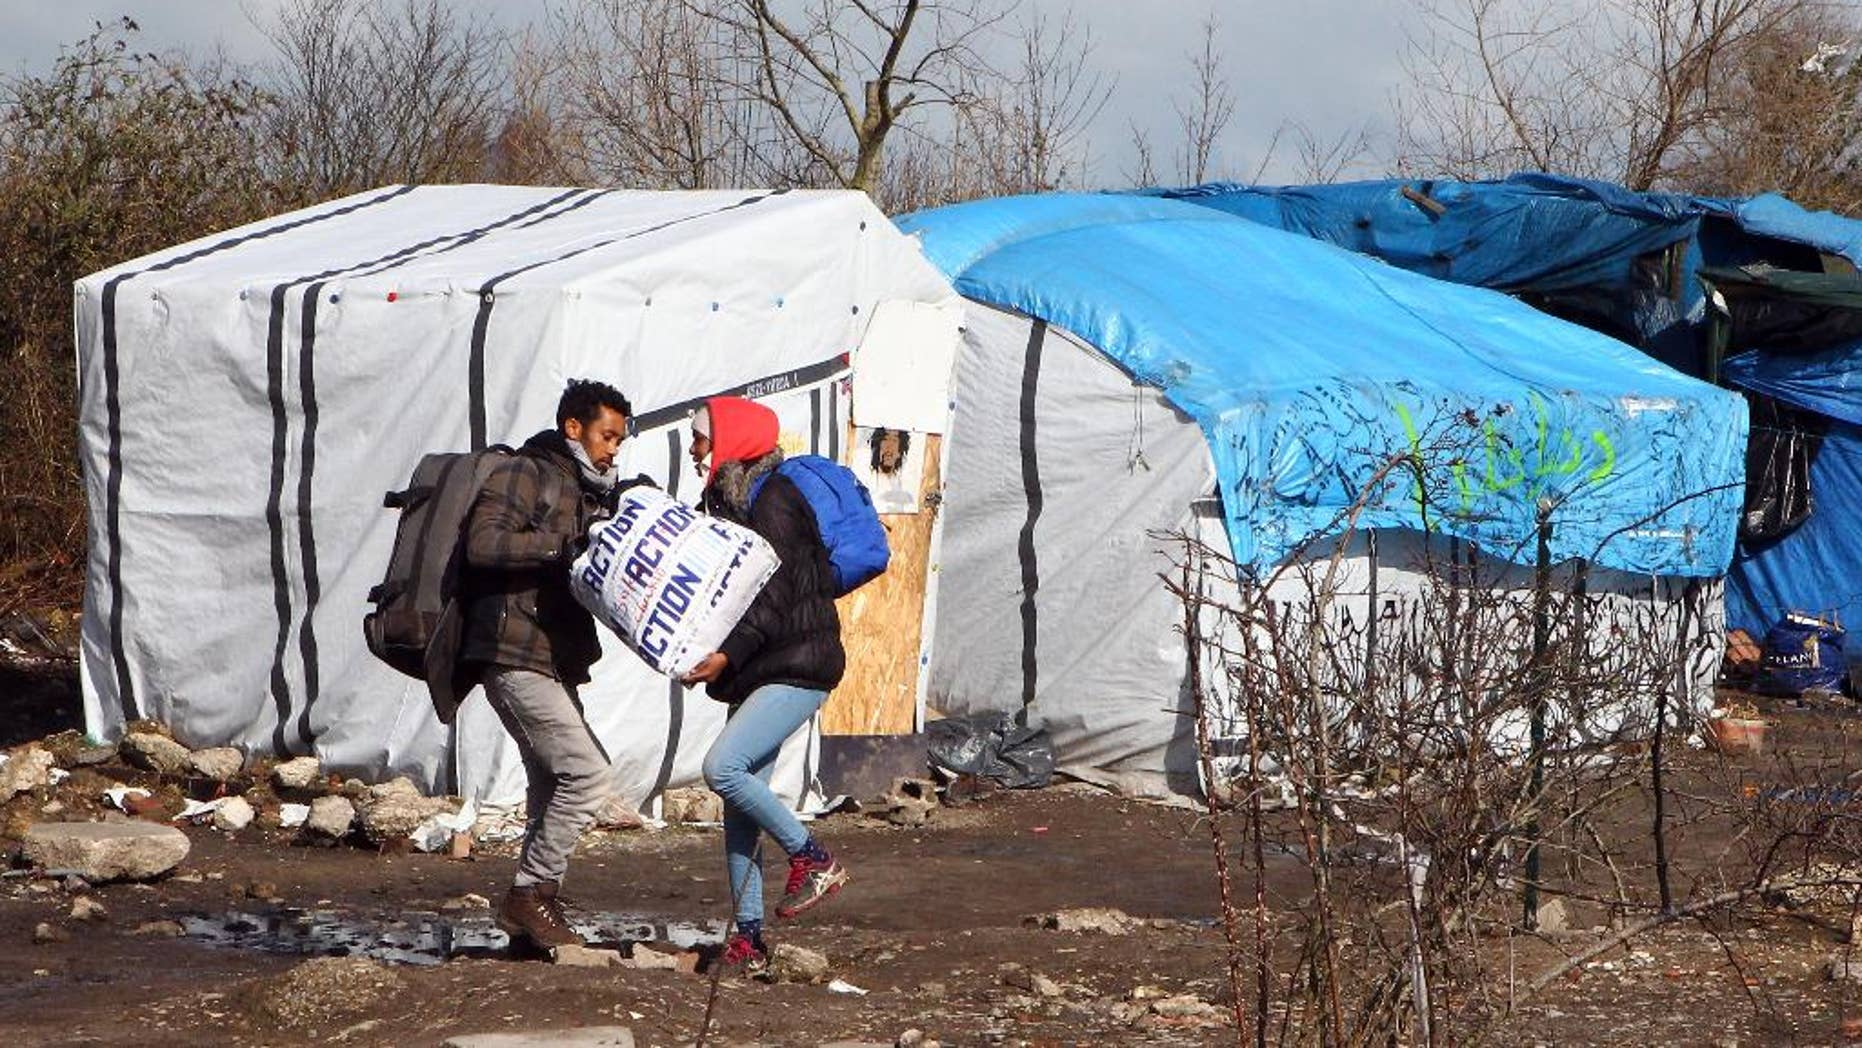 FILE - In this Thursday, March 3, 2016 file photo, unidentified migrants leave the makeshift camp near Calais, France. Residents of Champtercier fear their hamlet in the foothills of the Alps is about to become a new flashpoint for Europe's migrant crisis: Its population of 800 is slated to grow sharply when it takes in 100 migrants from an overflowing camp in Calais next month. (AP Photo/Michel Spingler, File)